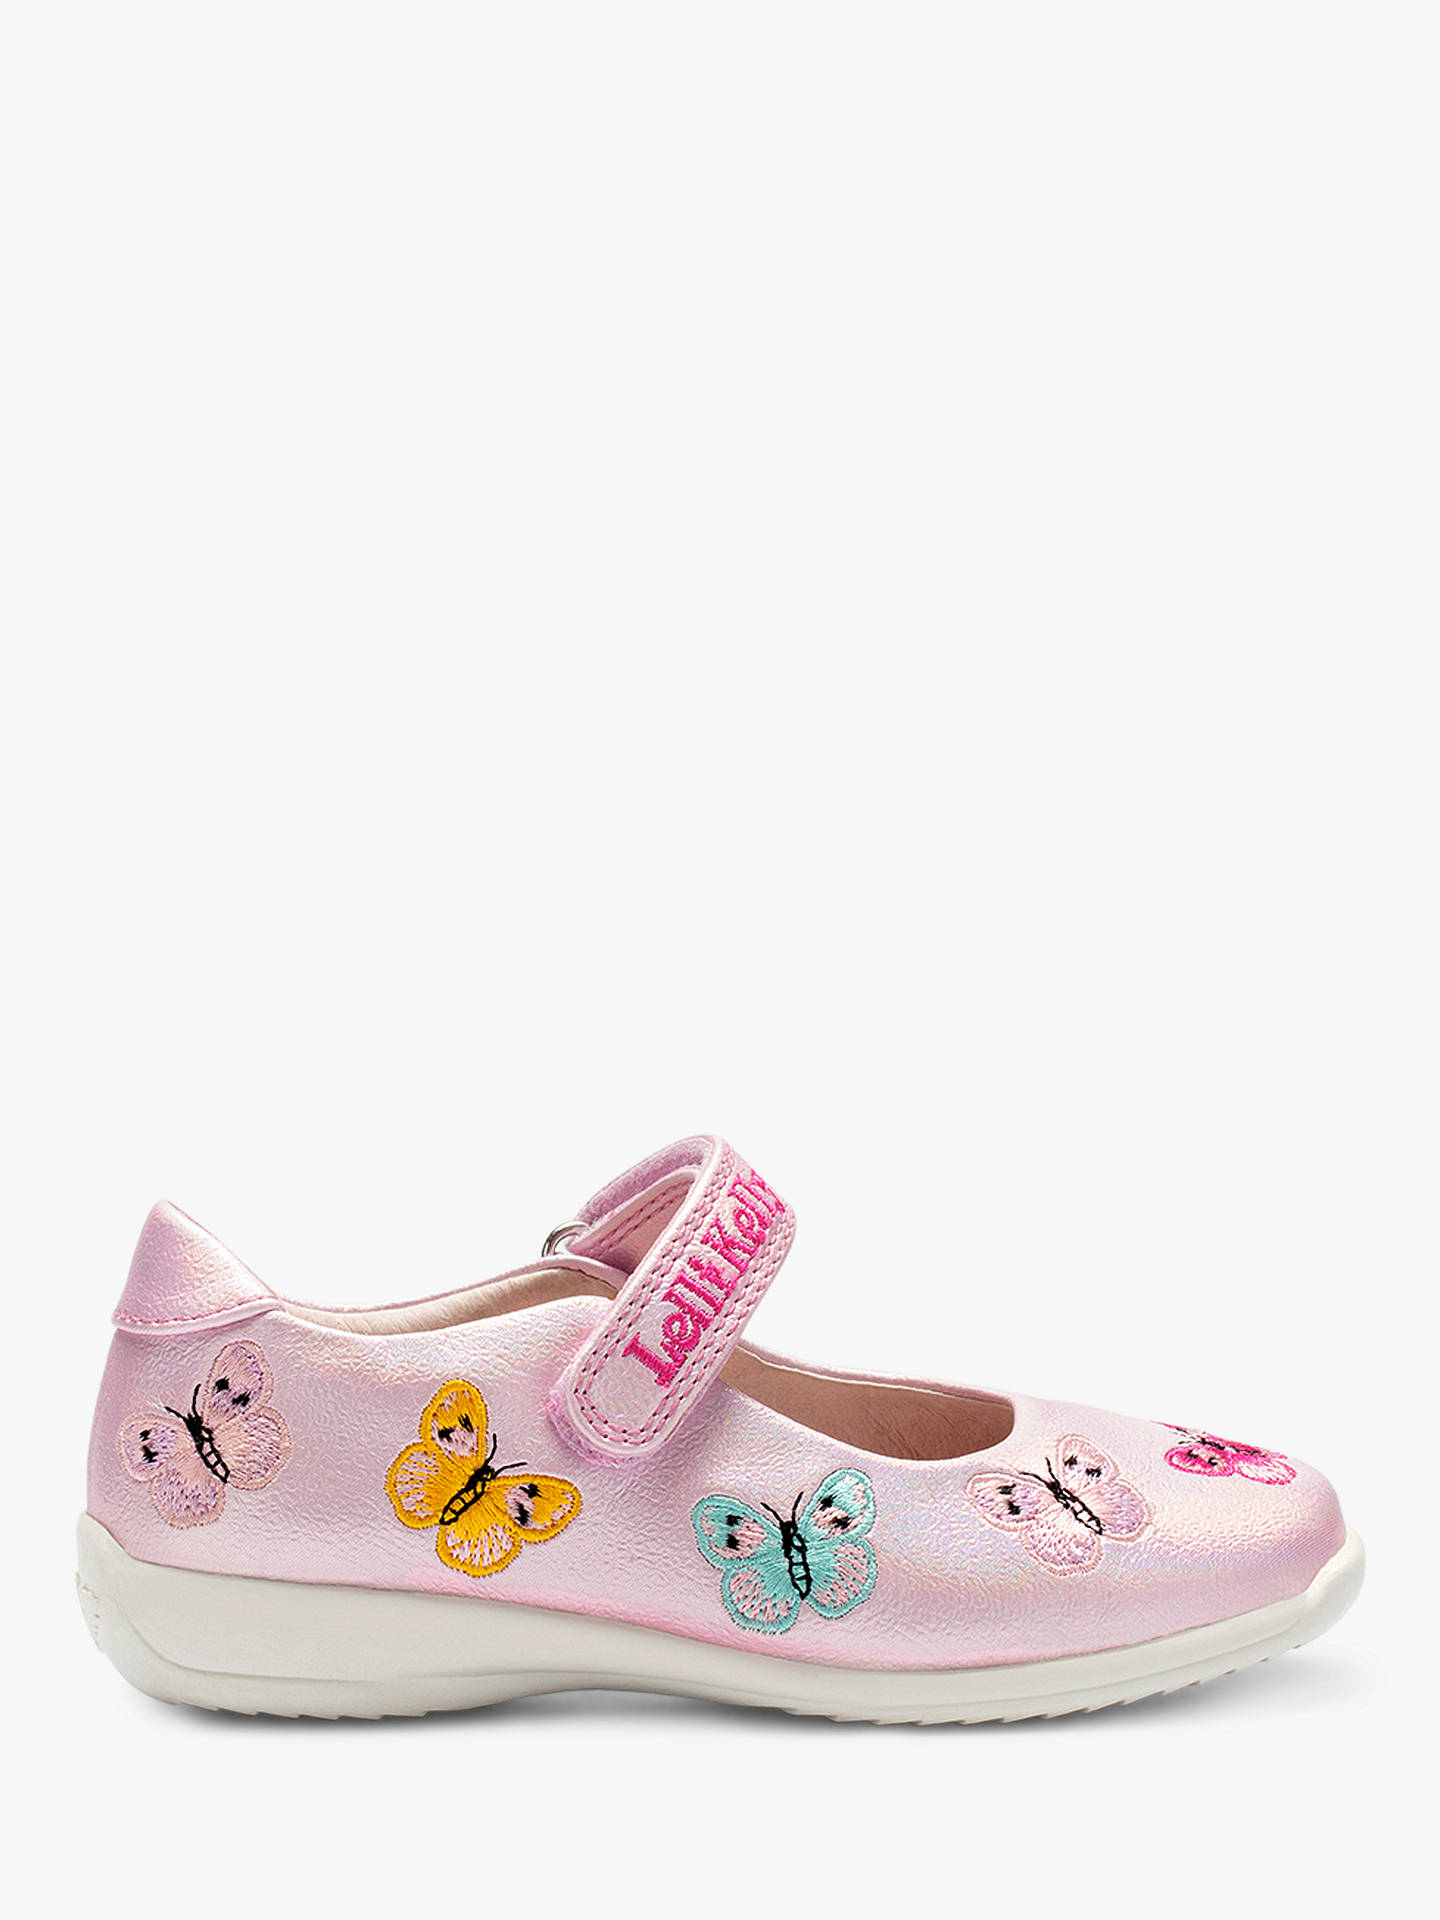 1ef4f3611a390 Buy Lelli Kelly Children's Kate Butterfly Dolly Shoes, Pearled Pink, 27  Online at johnlewis ...